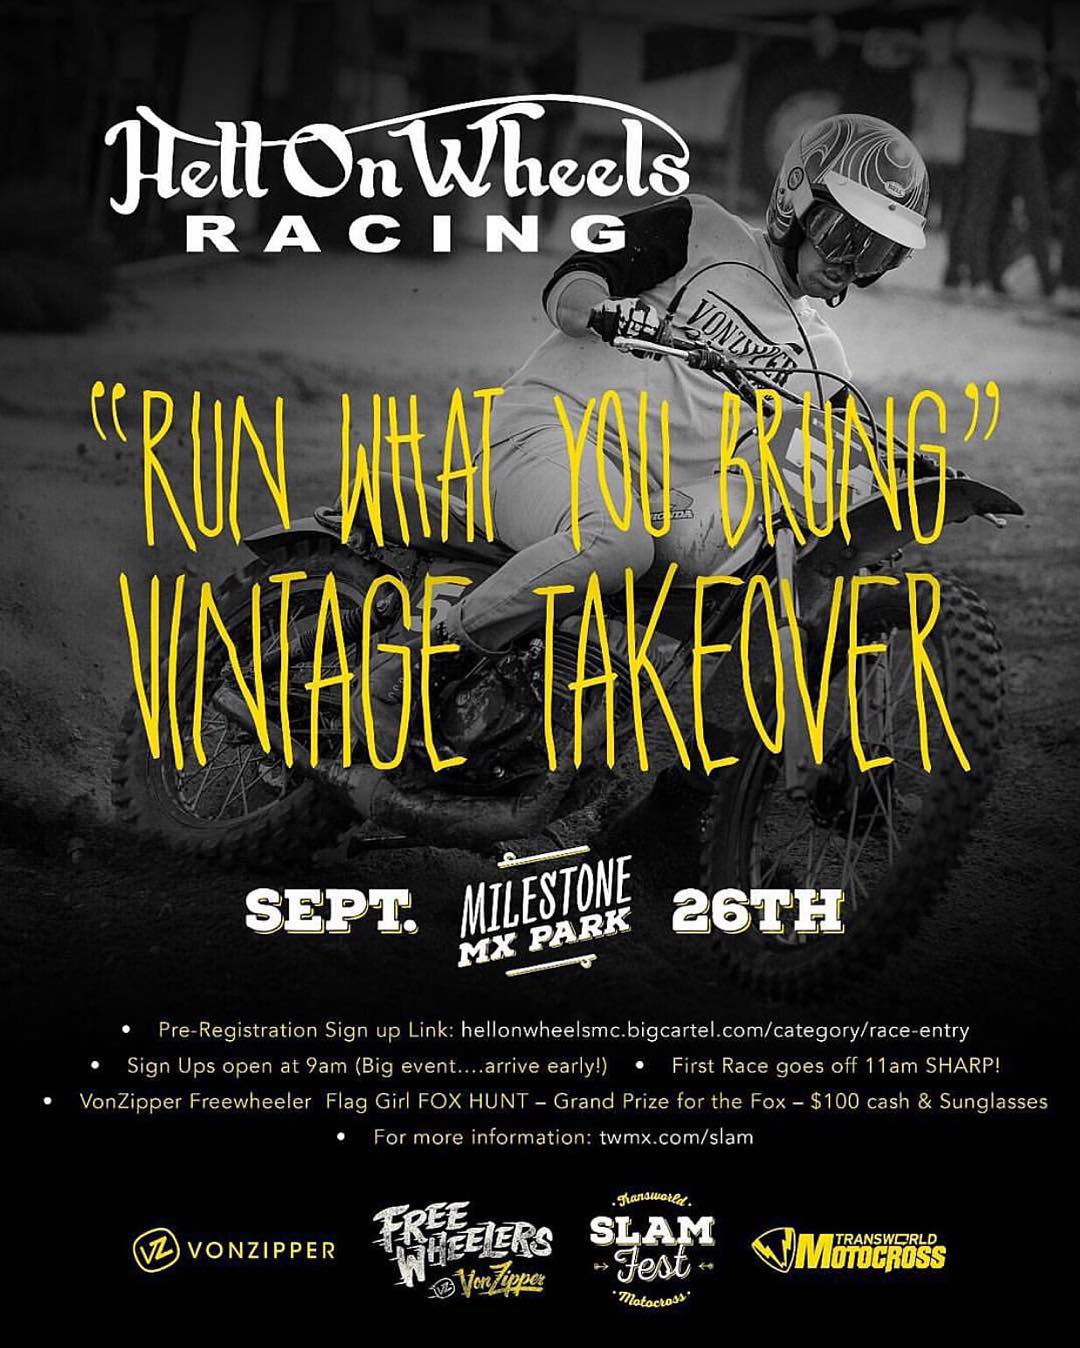 "September 26th is rapidly approaching! We are super fired up to throw our legs over the saddles for the @hellonwheelsmc ""Run What Your Brung"" Vintage Takeover at @twmxdotcom #SlamFest at @milestonemx raceway! A few spots are left so be sure to..."